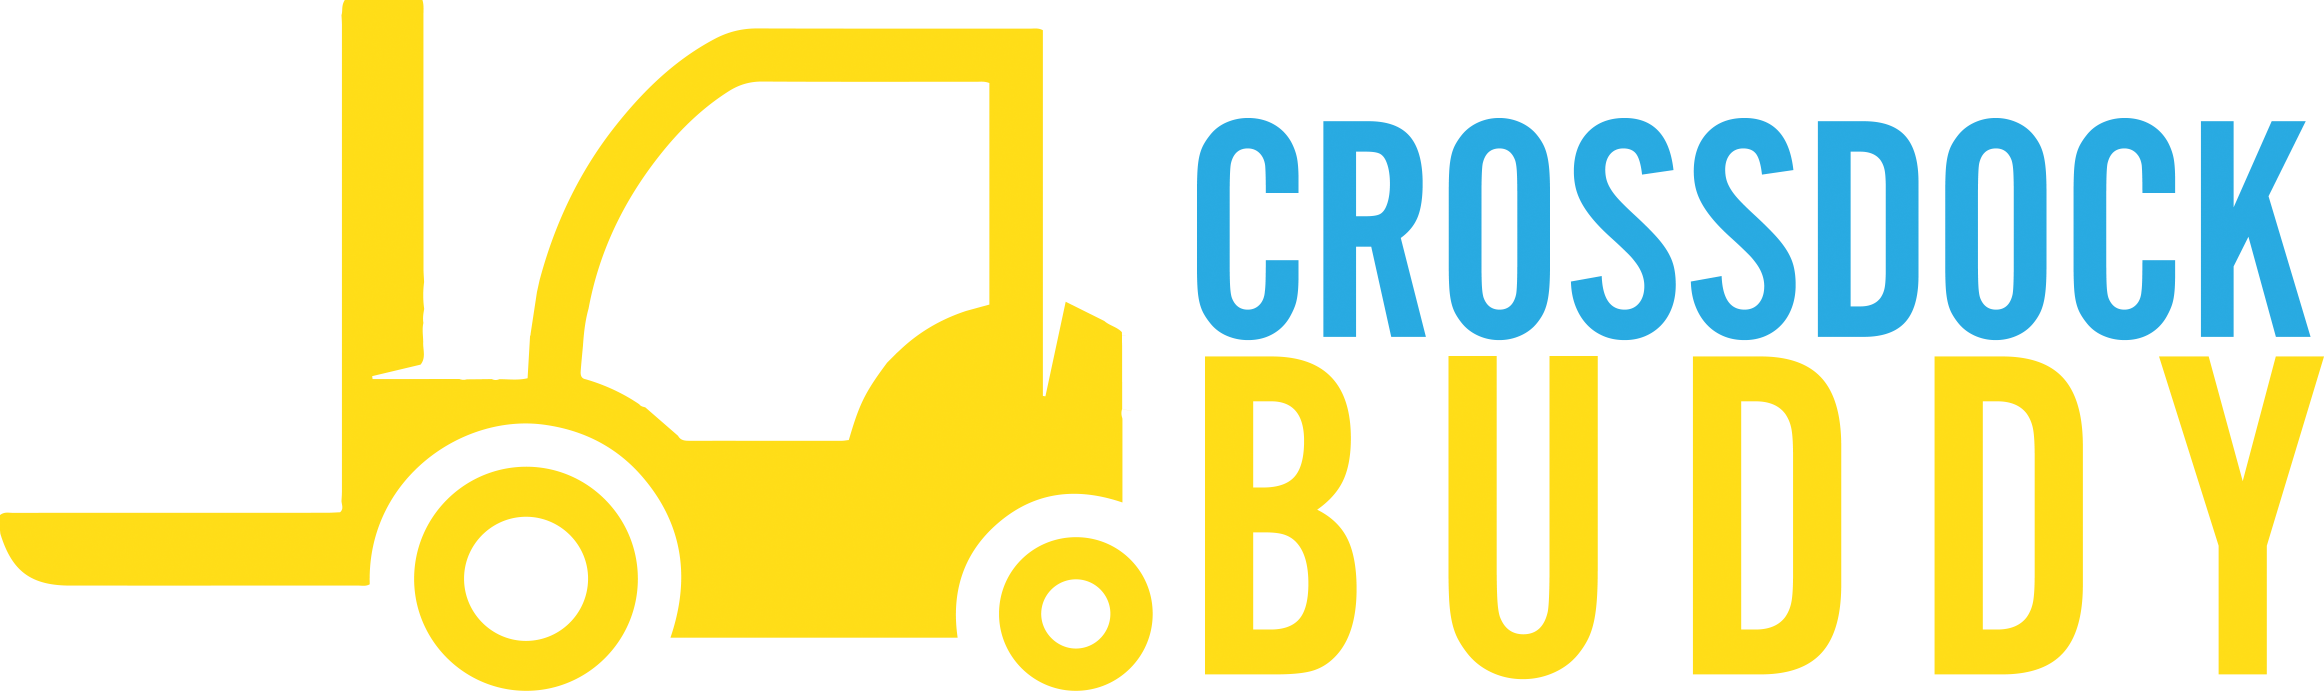 CrossDockBuddy.com